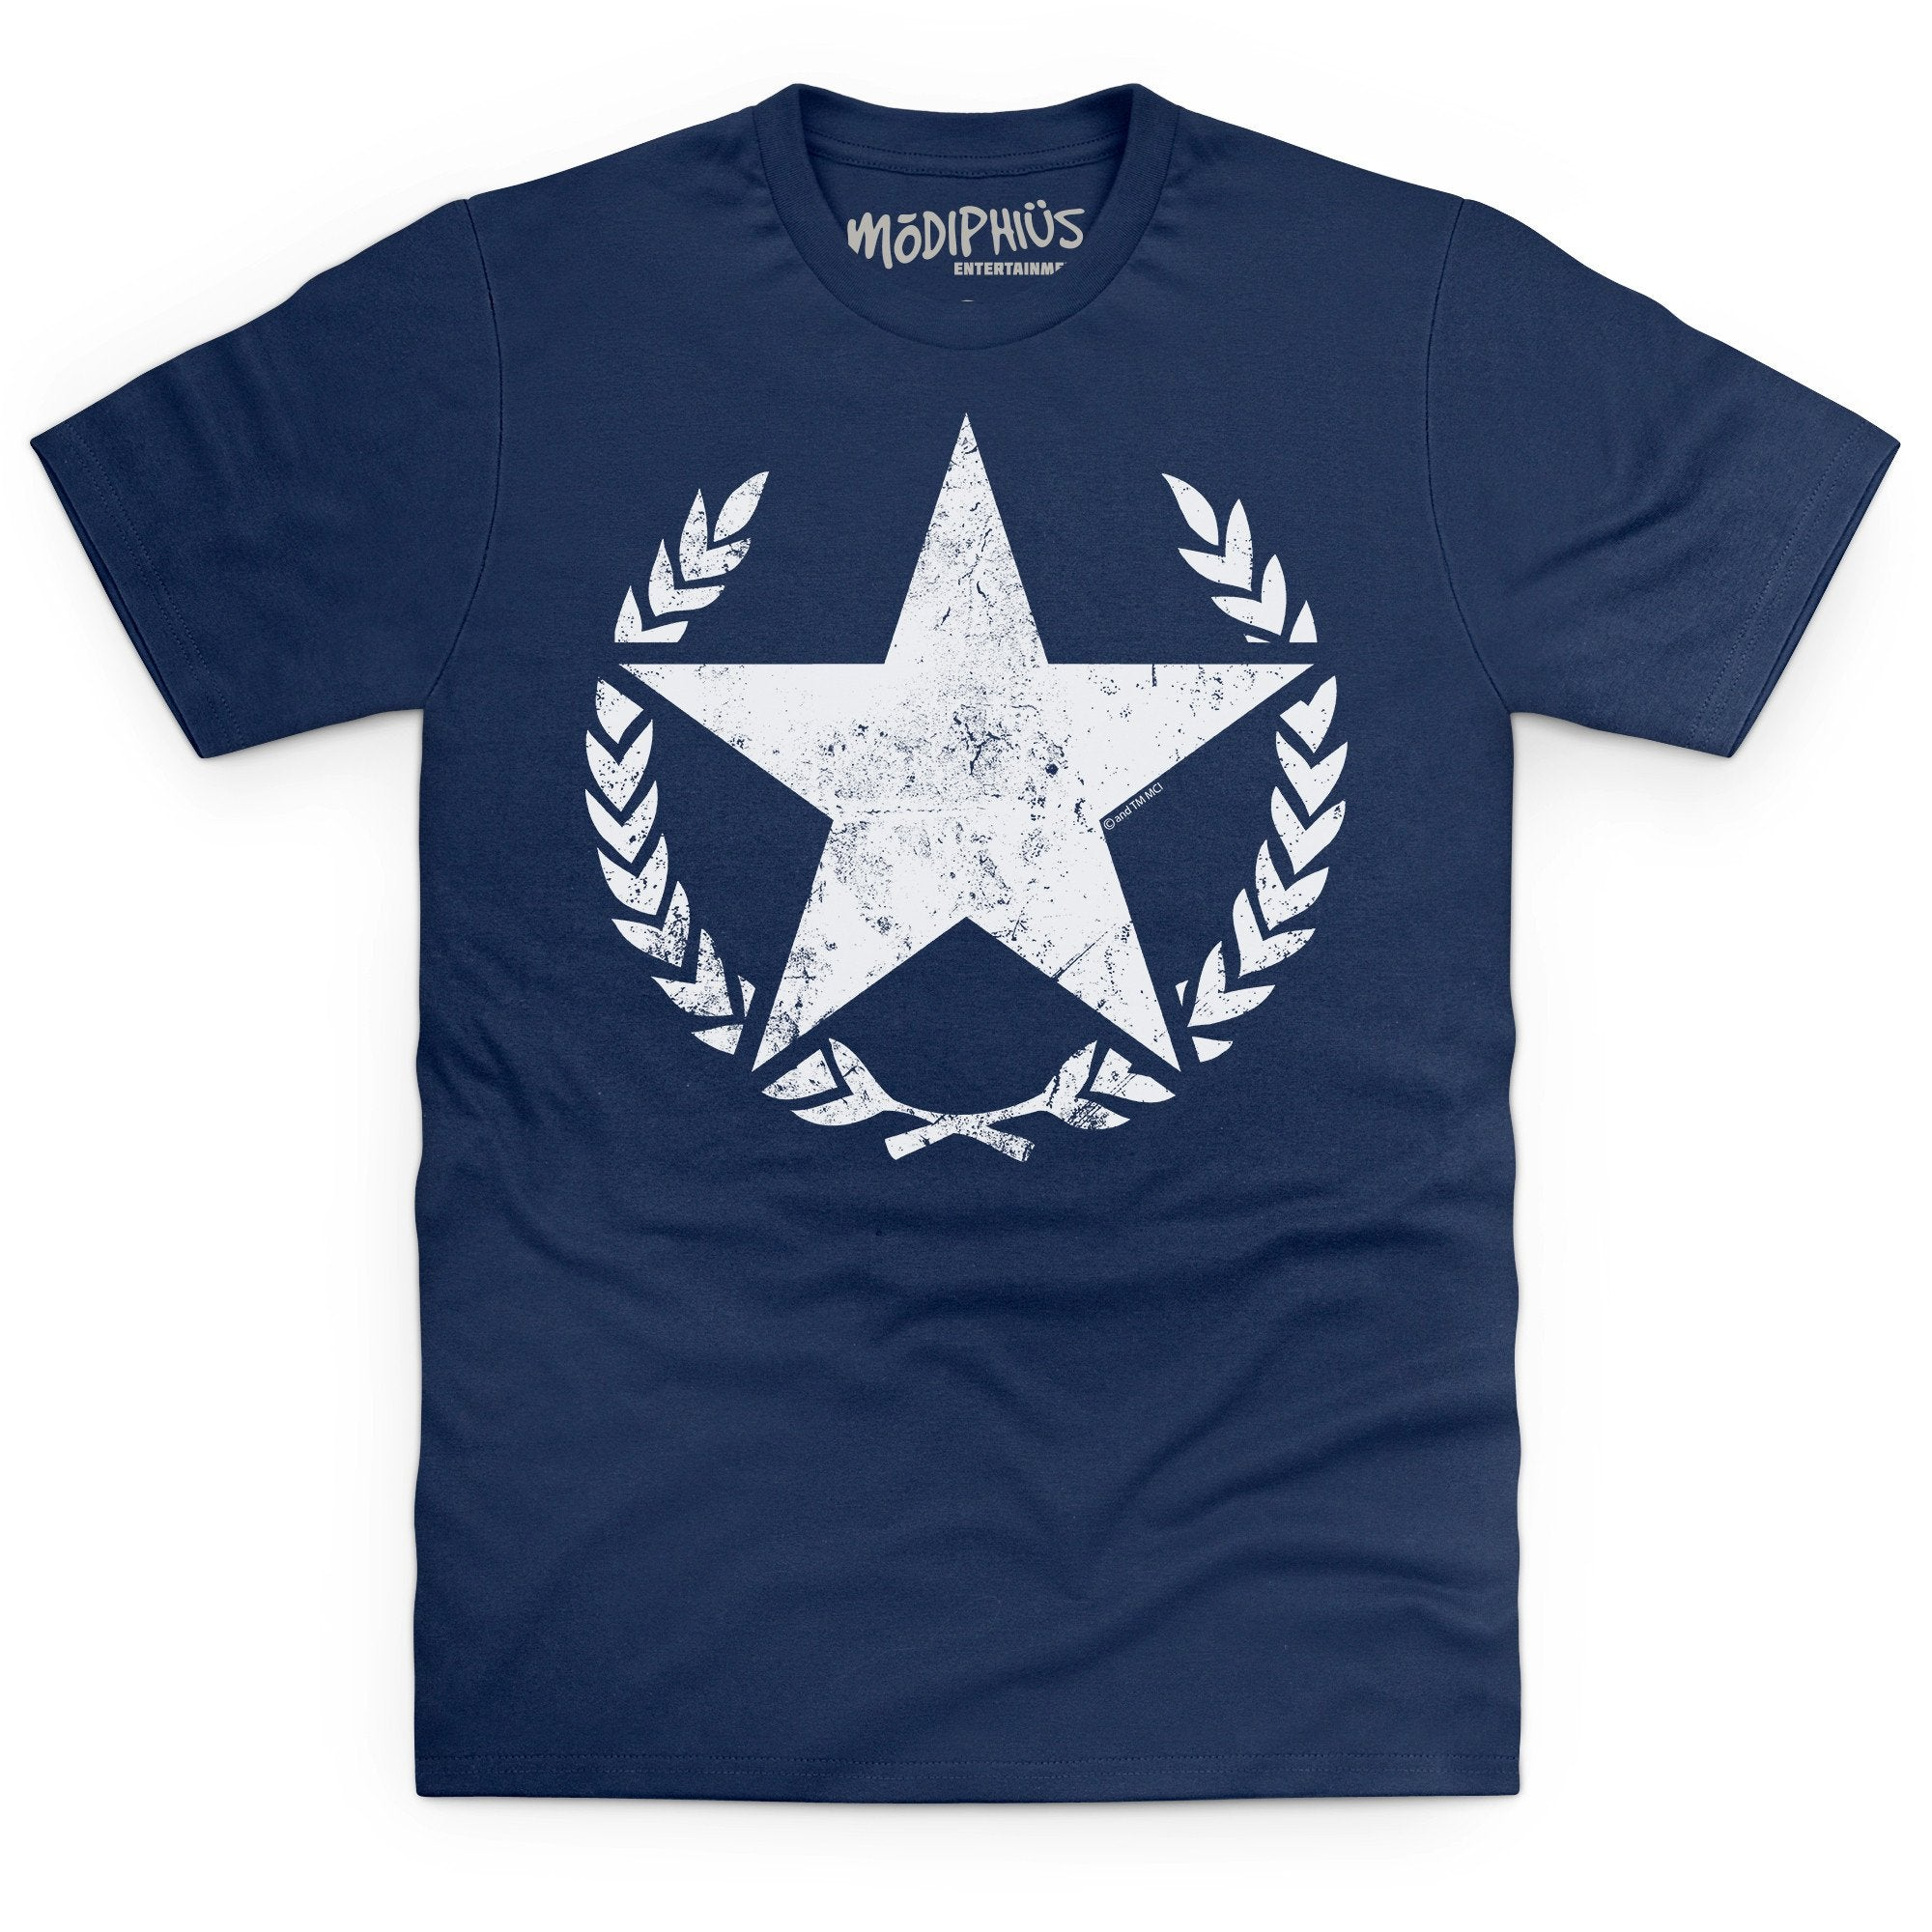 Whitestar distressed t-shirt